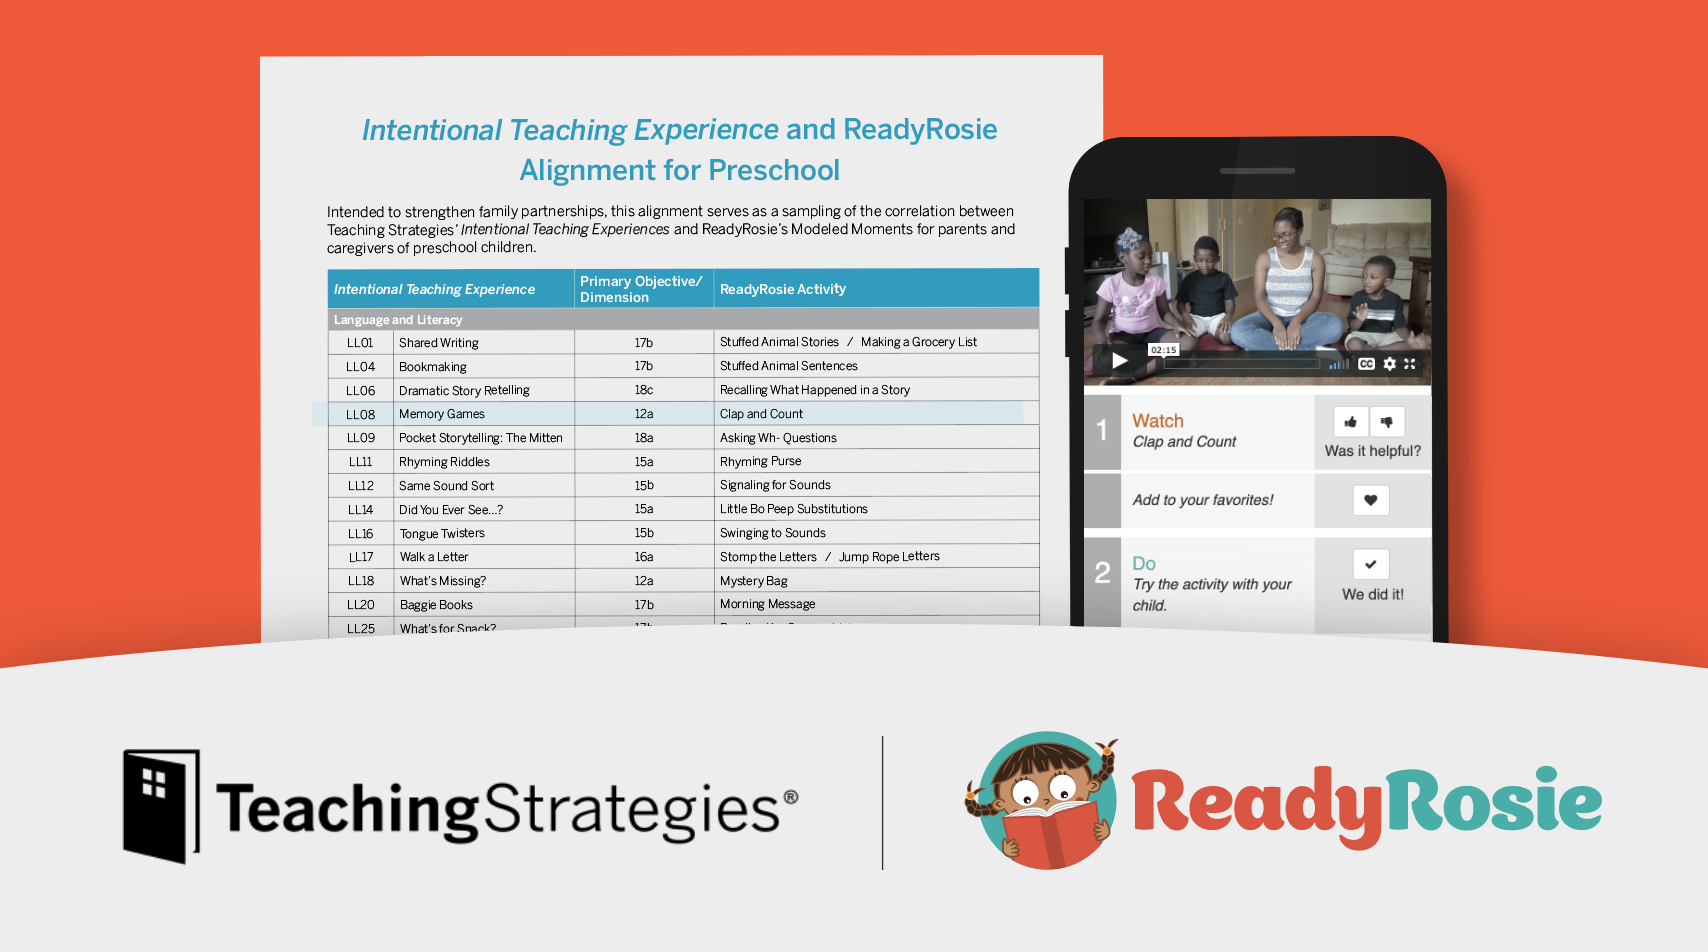 image for ReadyRosie & Teaching Strategies Empower Partnerships That Connect Family Engagement to Learning and Development